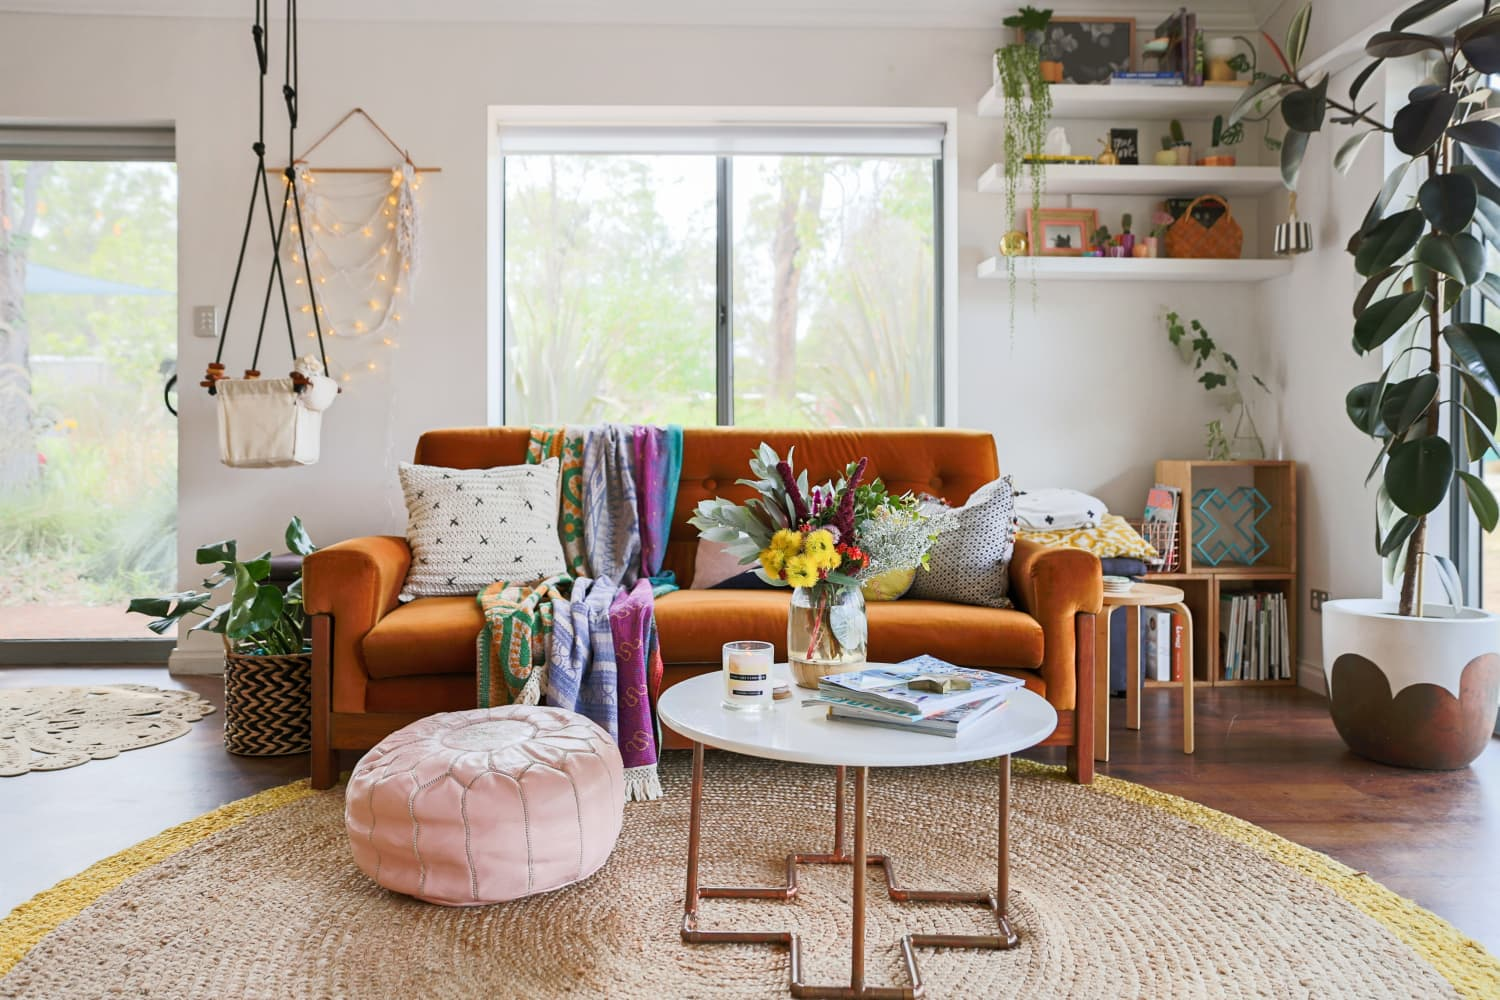 7 Decorating Mistakes We All Make in Our First Homes